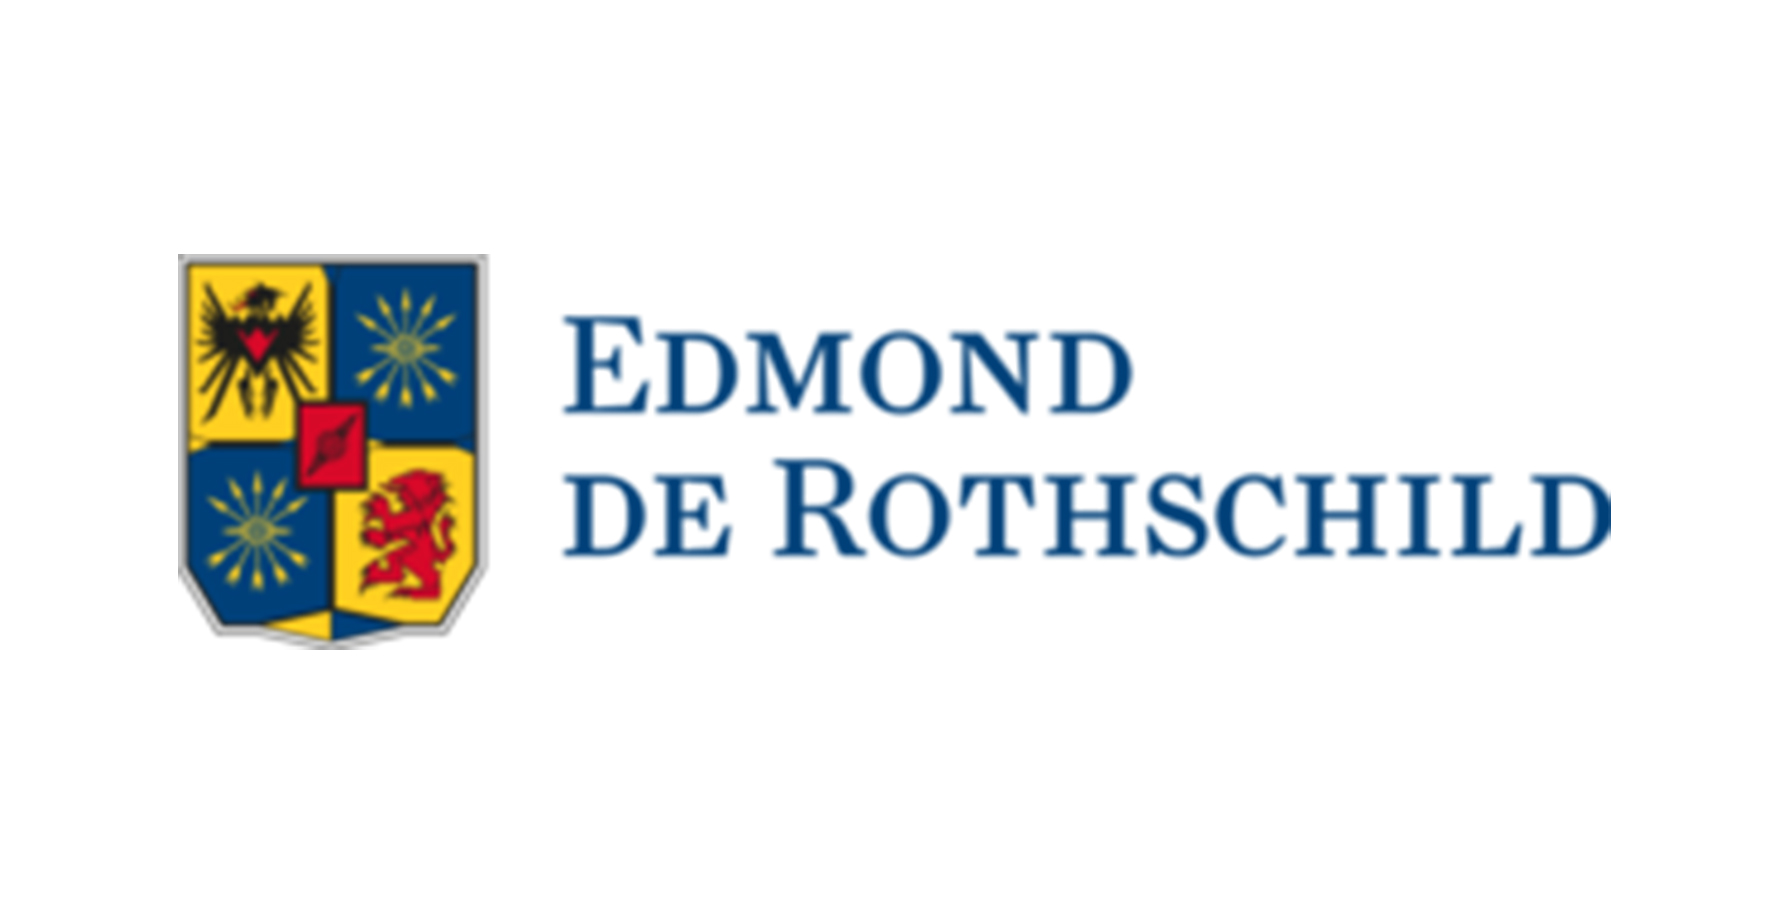 Groupe Edmond de Rothschild